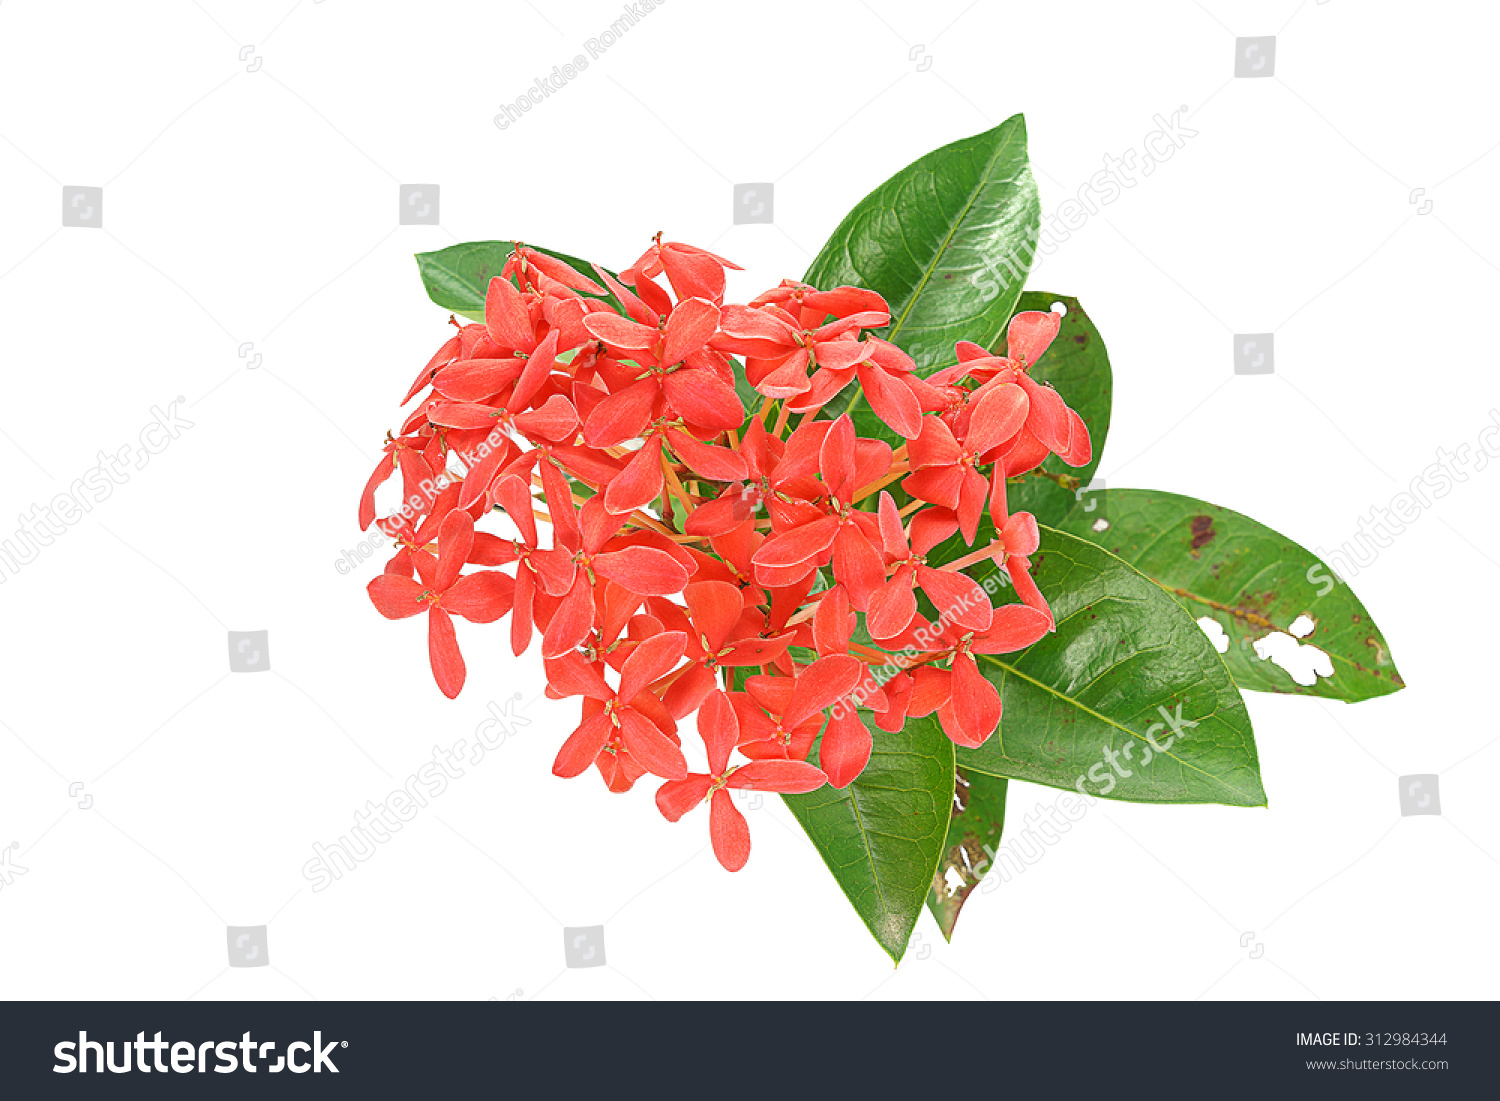 Red Pink Ixora Flower,With small flowers that come together in a ...